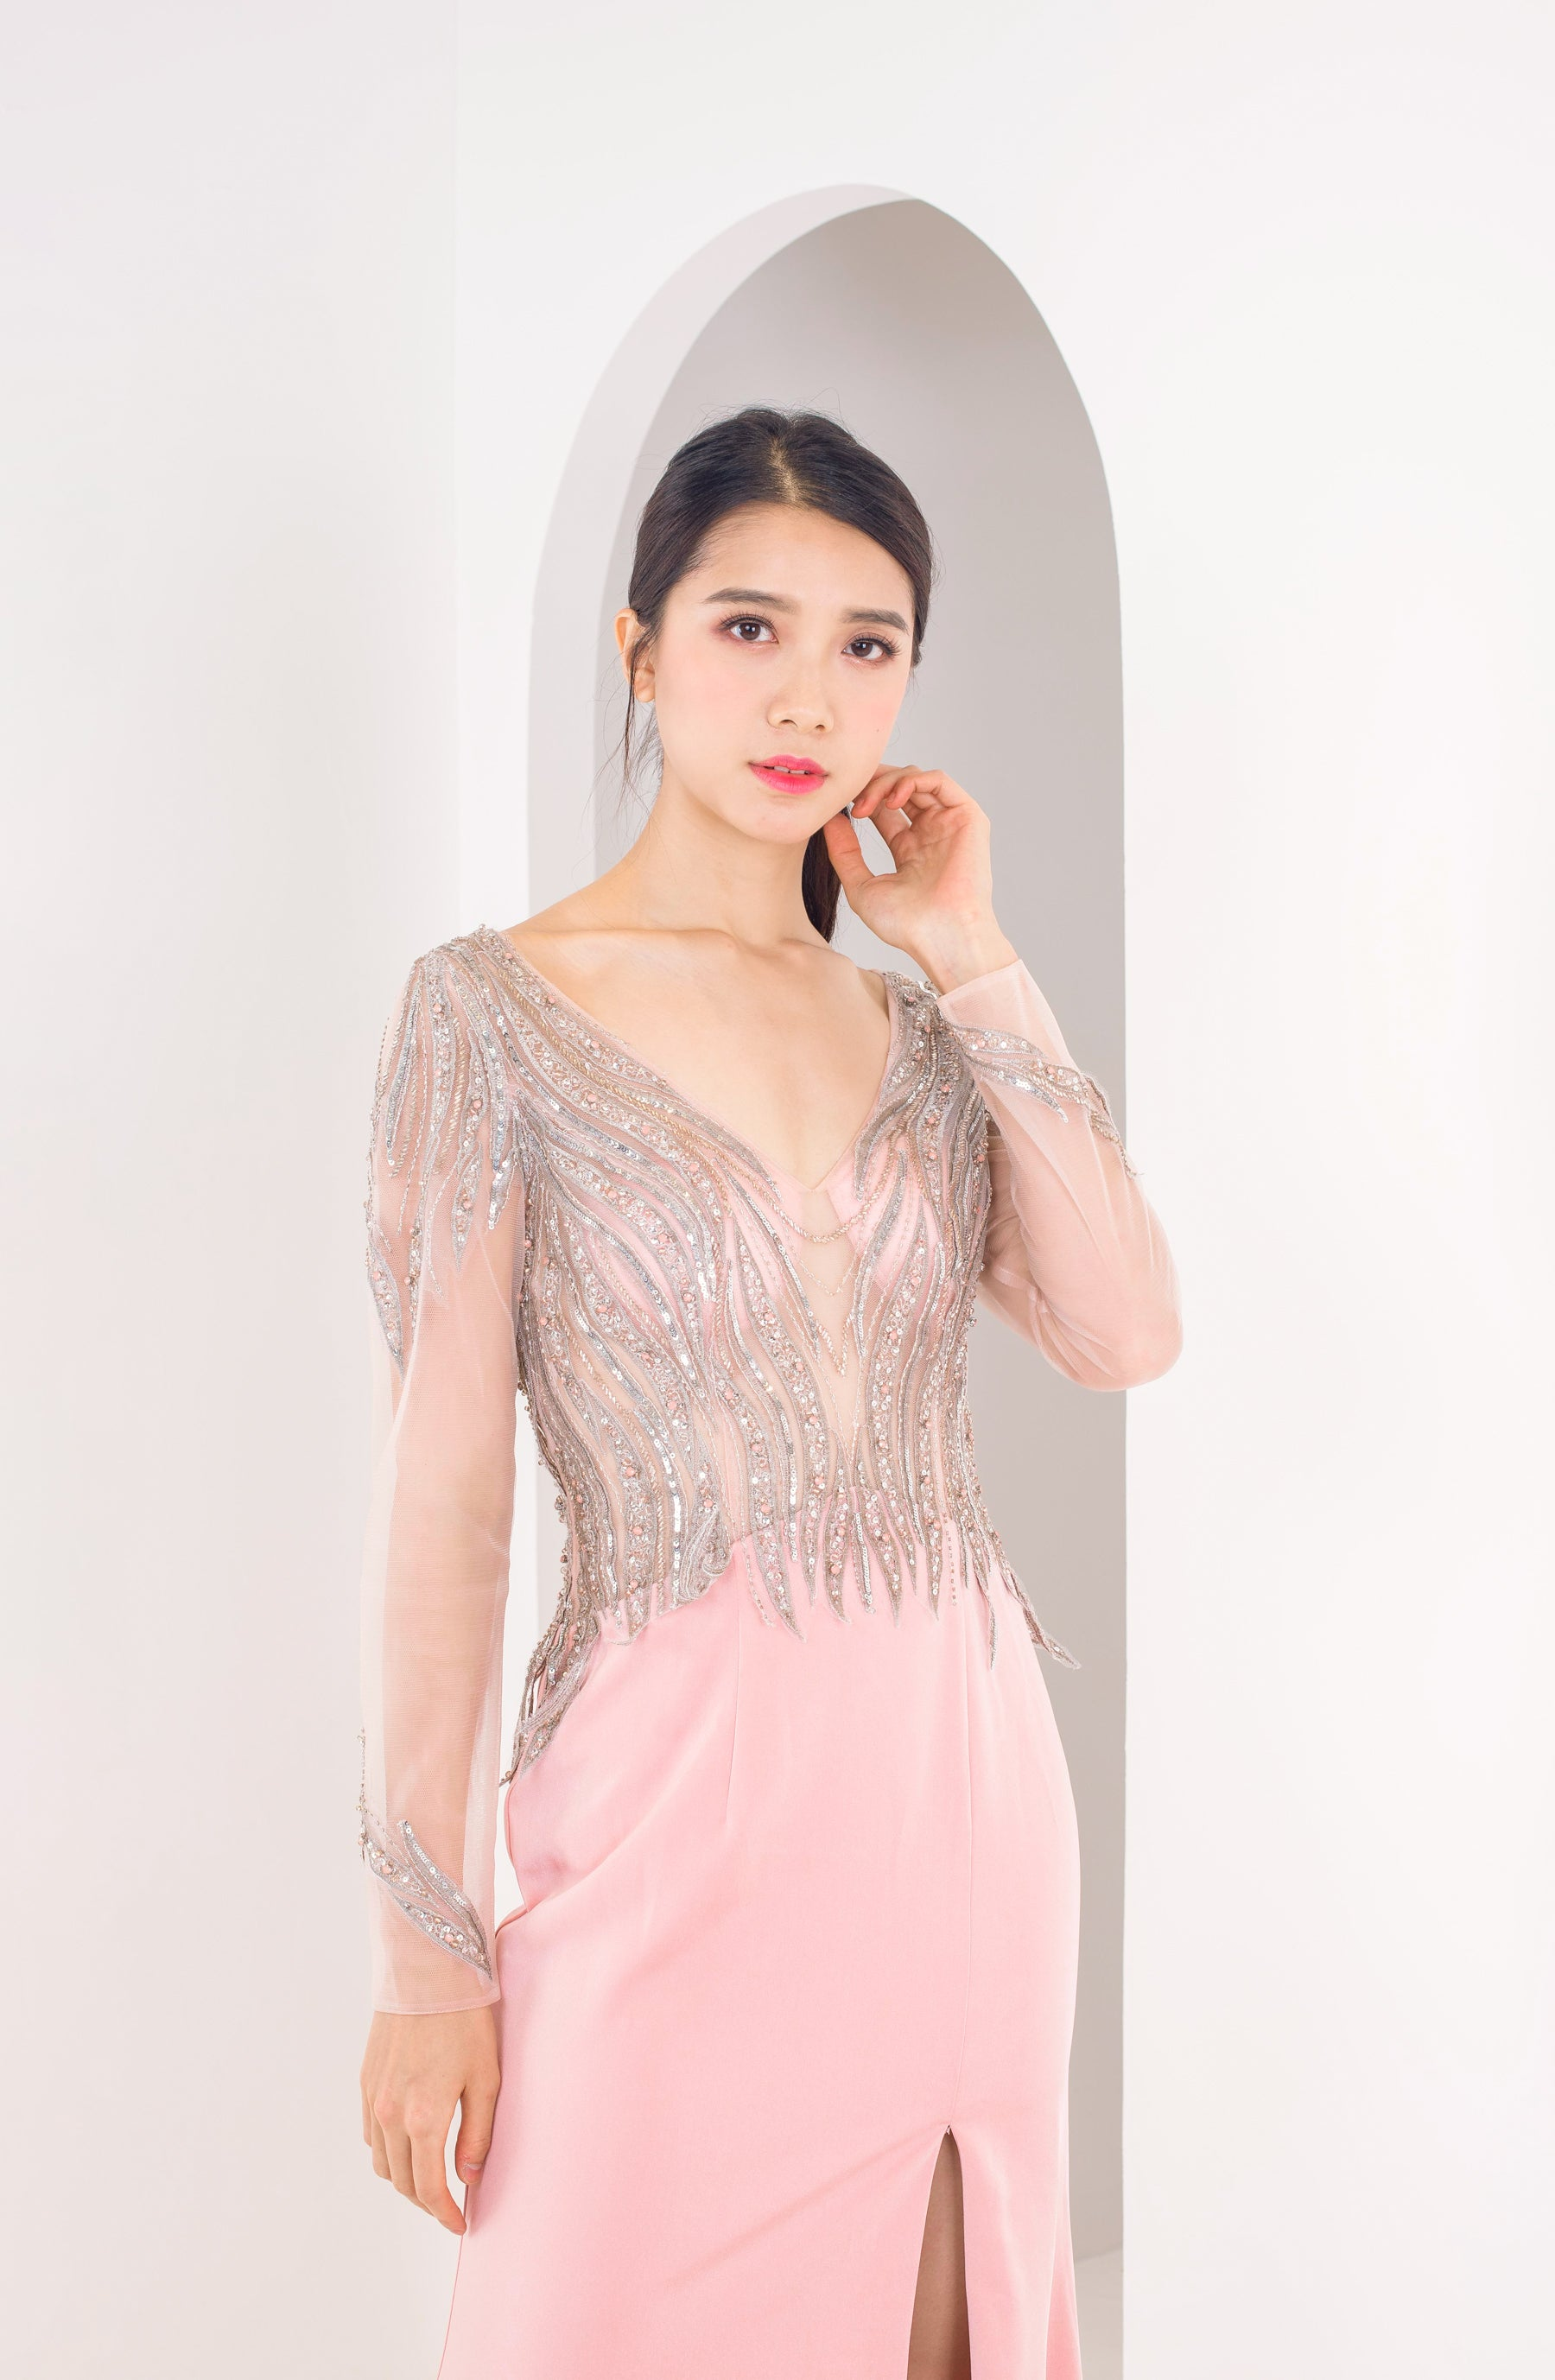 Layla Greyish Pink Long Sleeve Gown